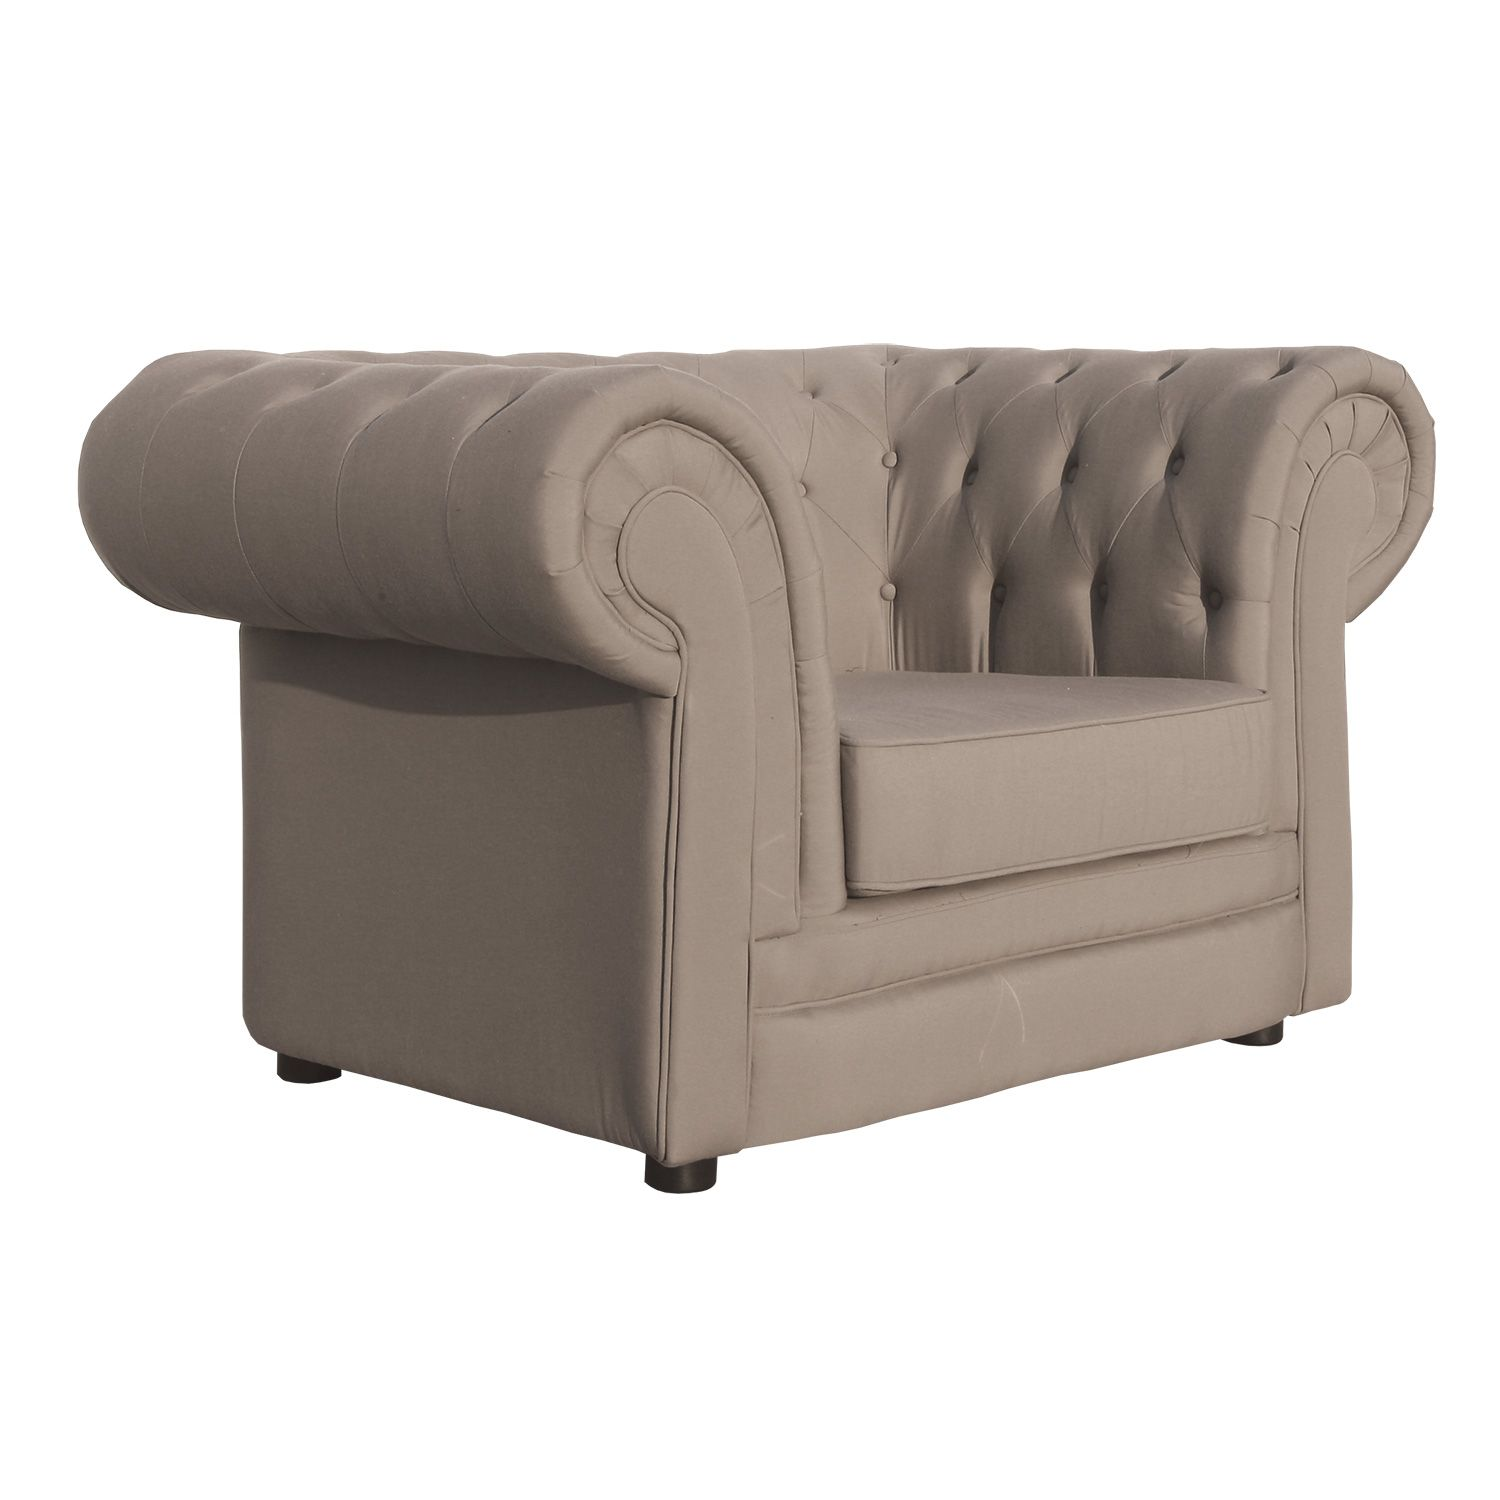 Best Uk Armchairs Armchairs For Sale Armchairs Cheap 400 x 300